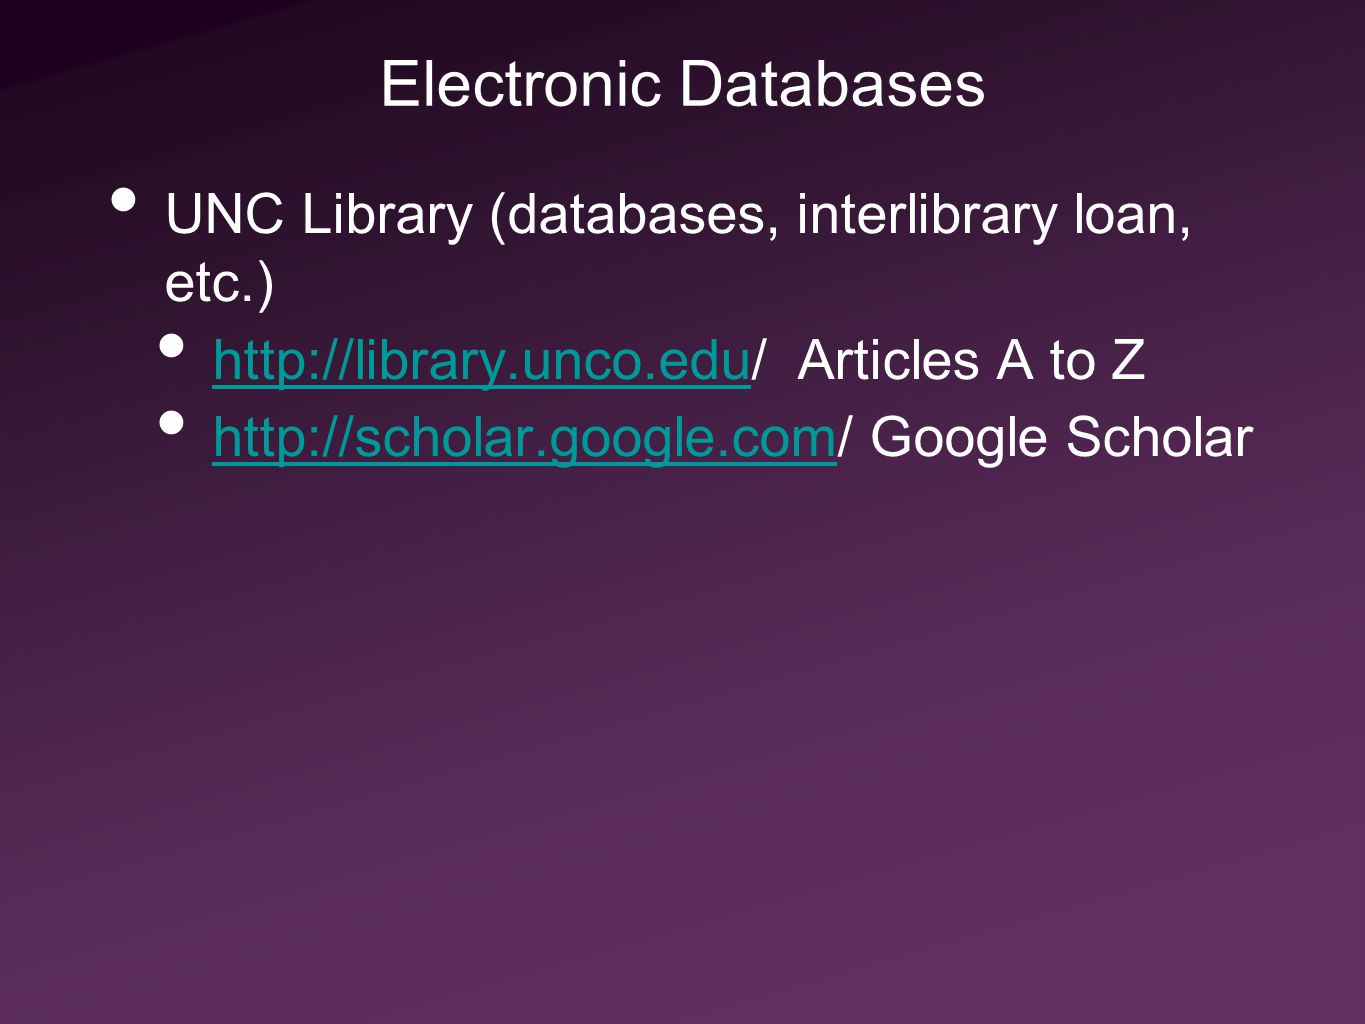 Electronic Databases UNC Library (databases, interlibrary loan, etc.) http://library.unco.edu/ Articles A to Z http://library.unco.edu http://scholar.google.com/ Google Scholar http://scholar.google.com